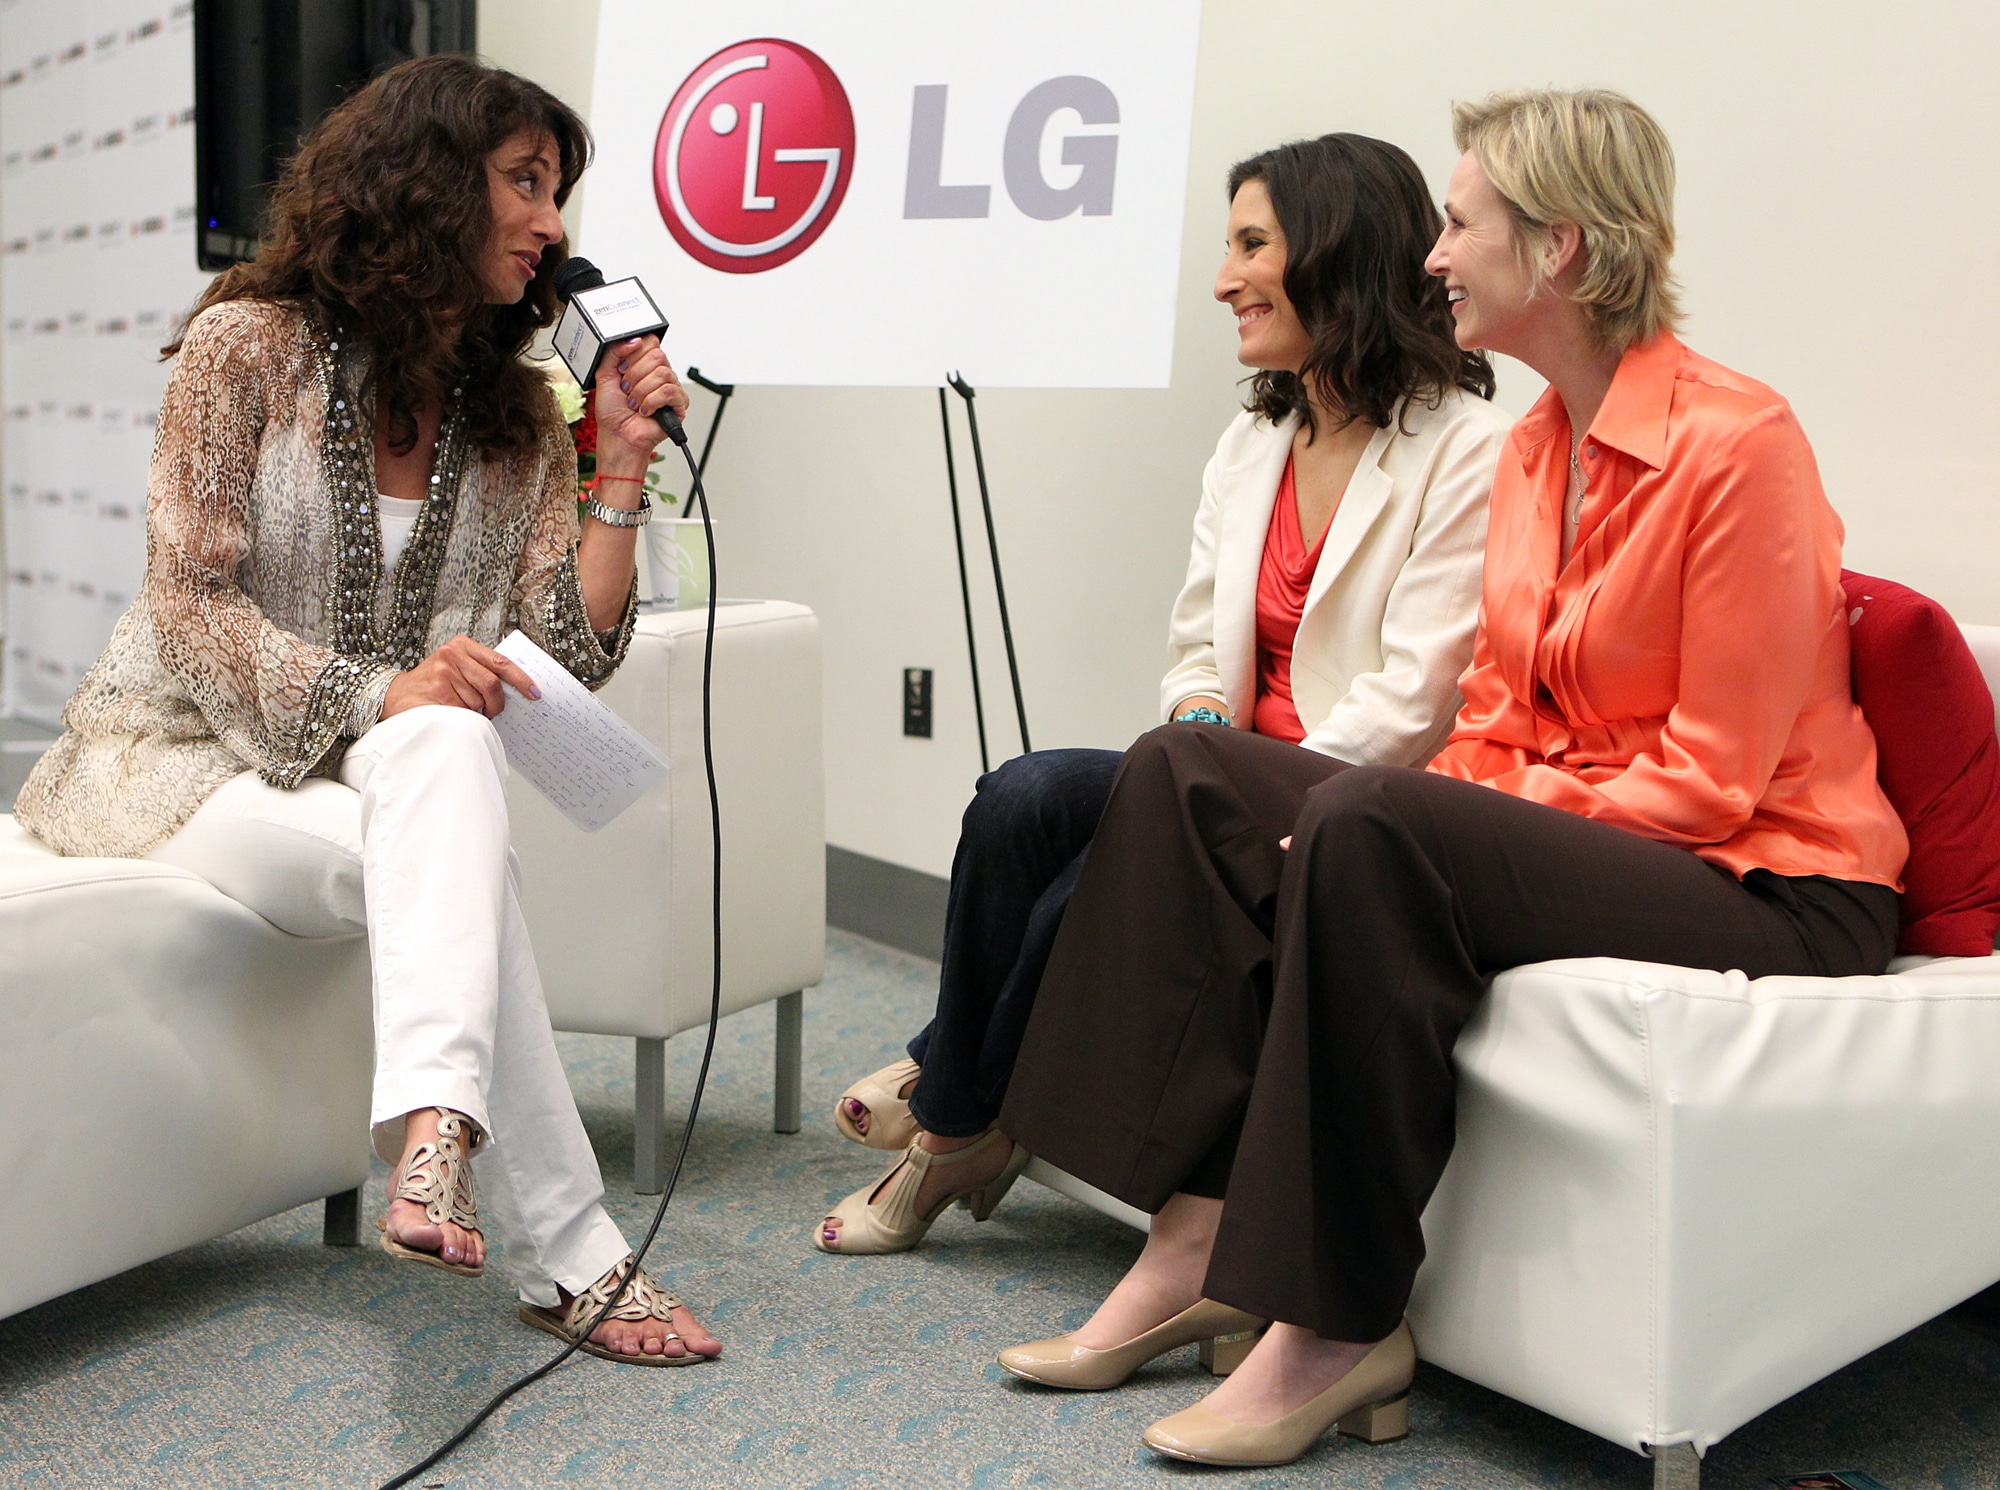 LG texxtEd program BlogHer 2011